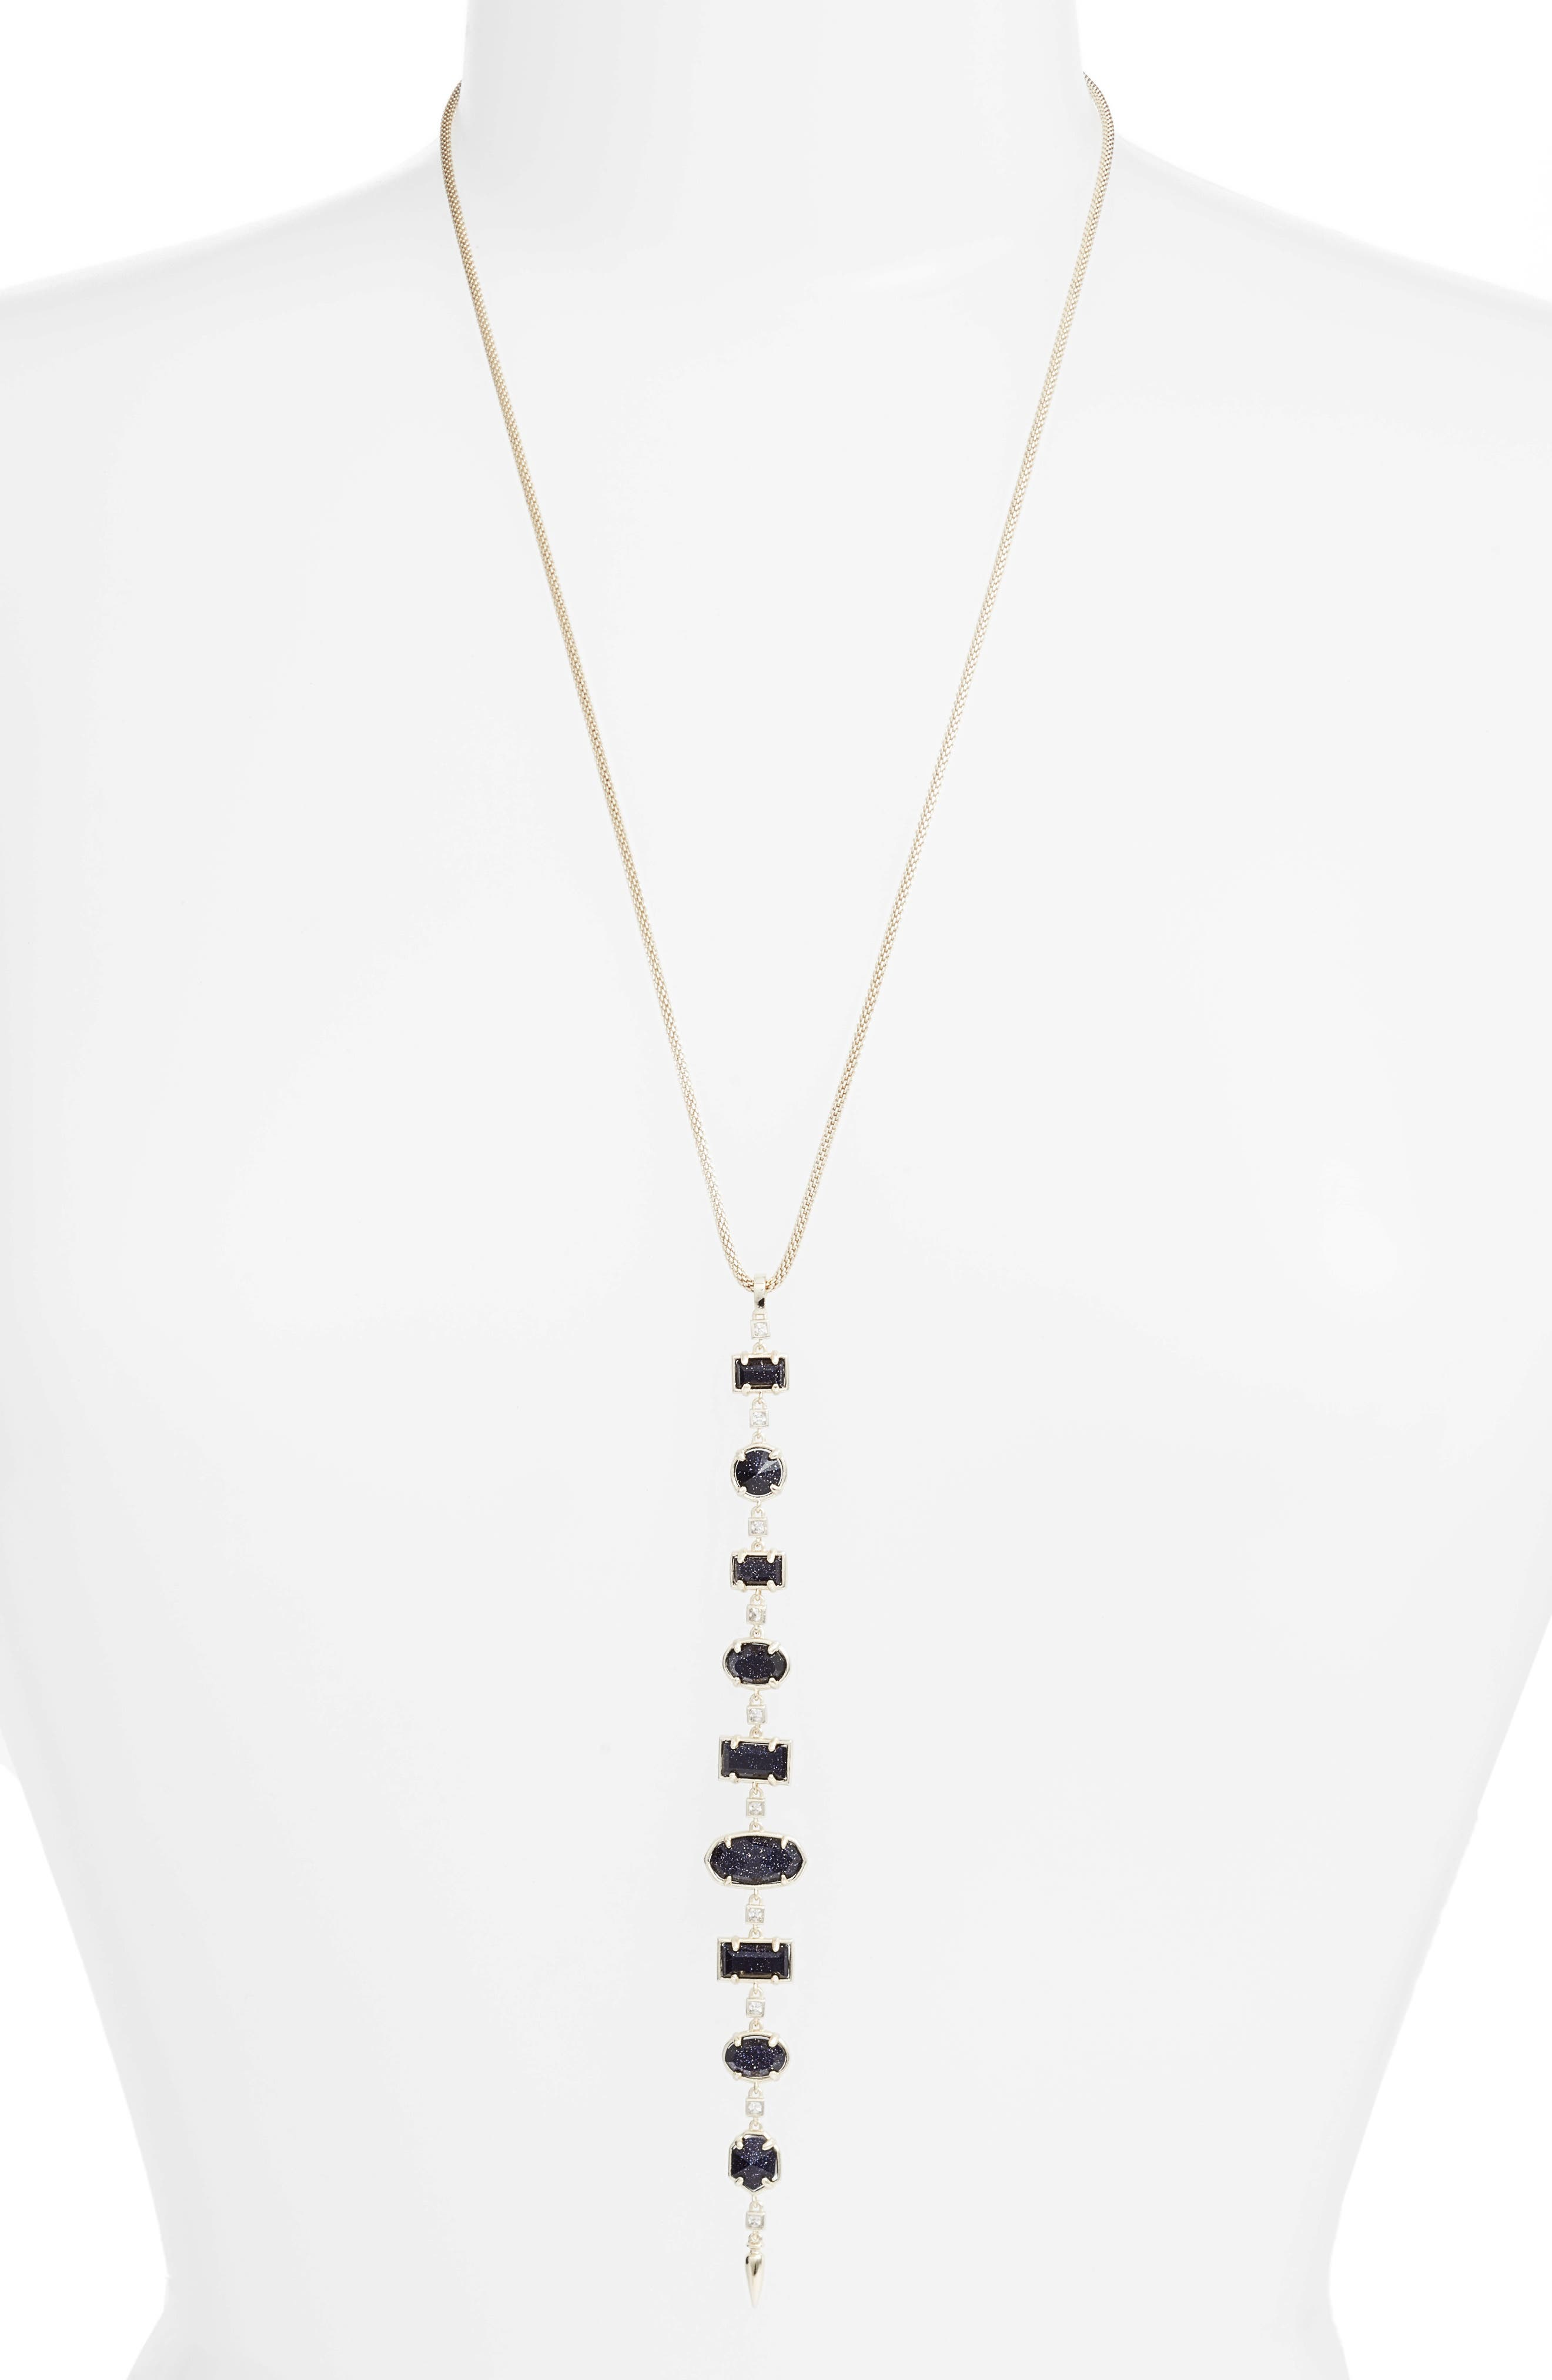 Alternate Image 1 Selected - Kendra Scott Braxton Stone Drop Pendant Necklace (Nordstrom Exclusive)